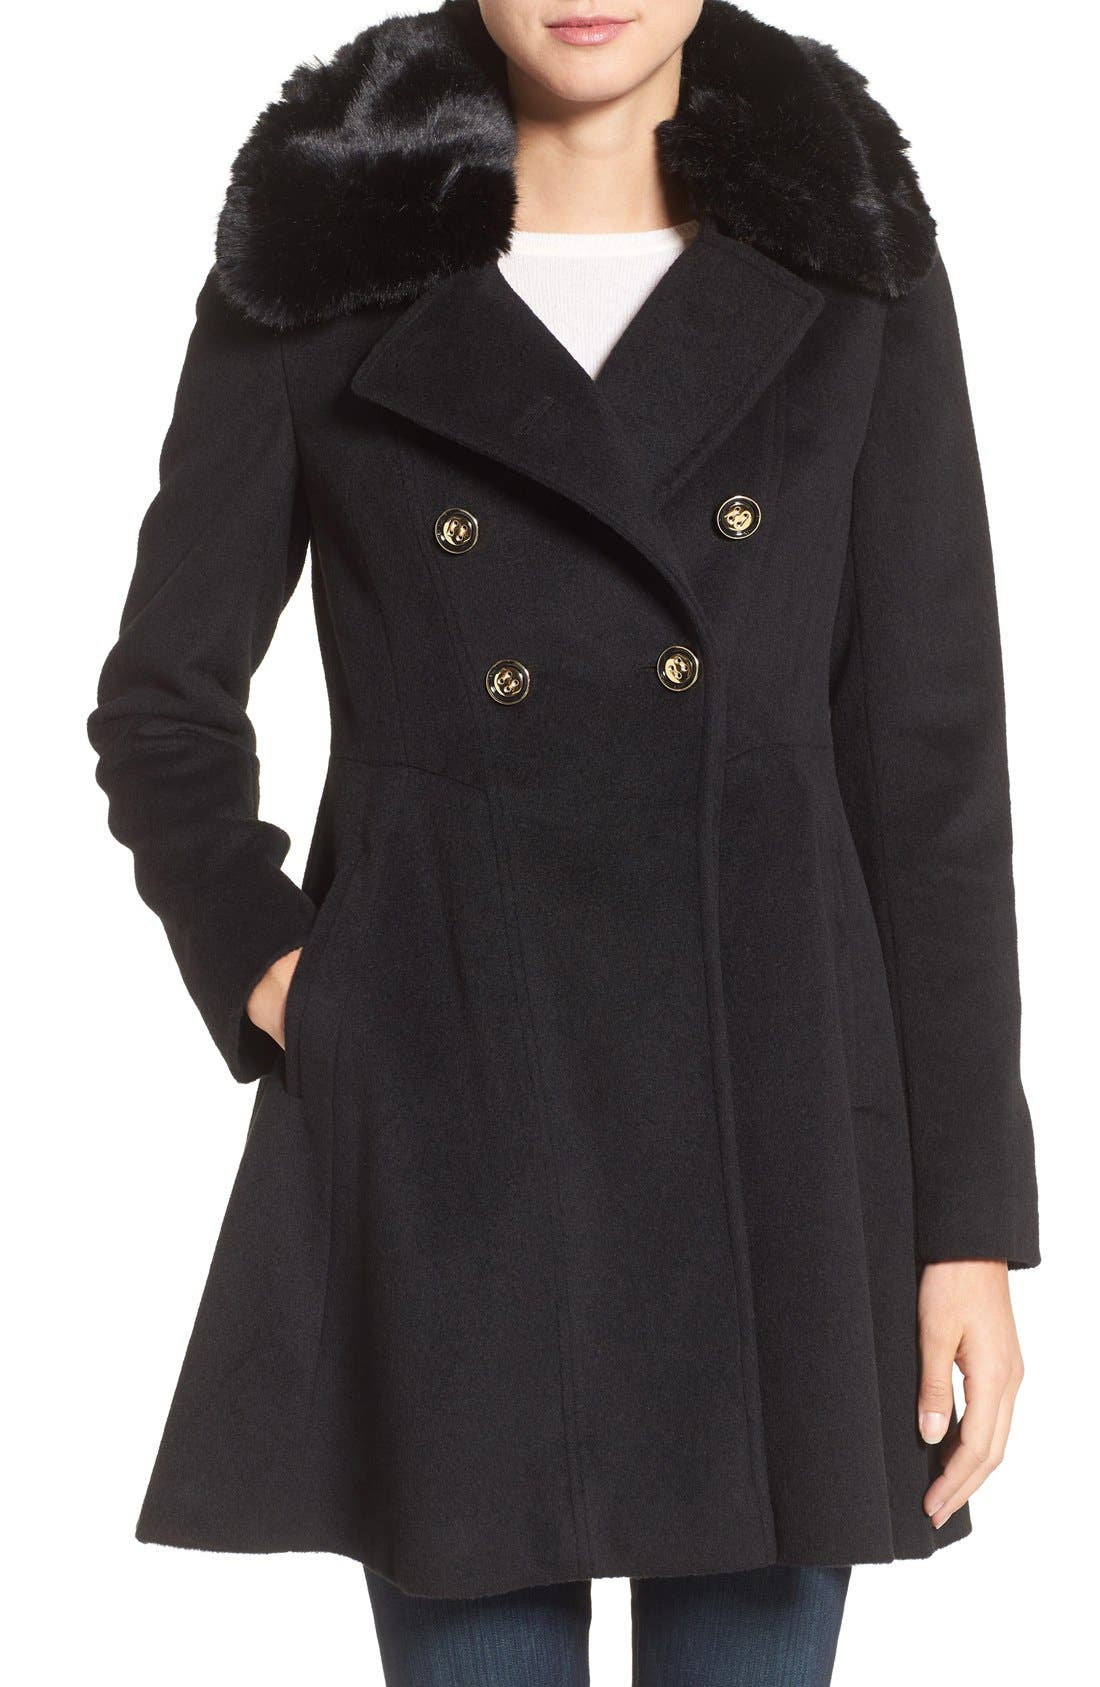 Via Spiga Double Breasted Coat with Faux Fur Collar